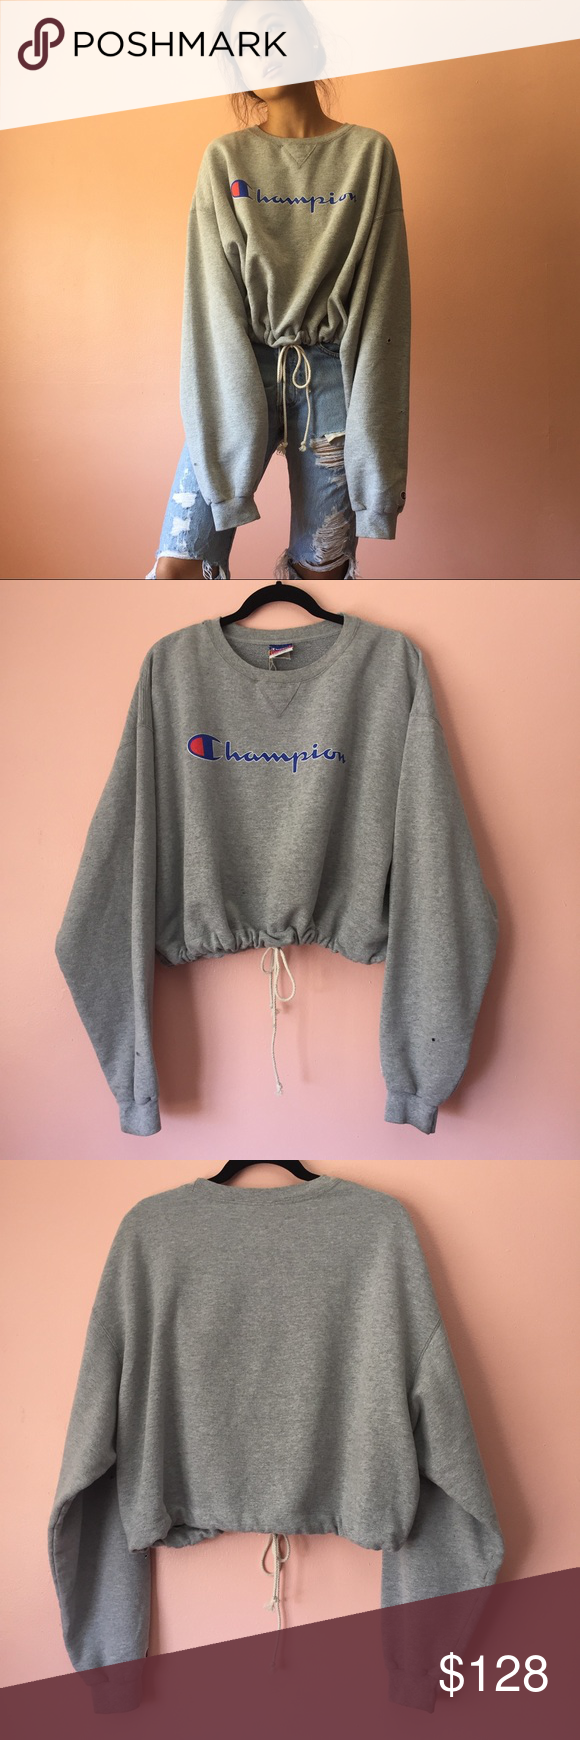 08ff1d03 Vintage Champion Cropped Sweatshirt Break Instagram with this vintage  deadstock Champion sweatshirt. Features a crewneck